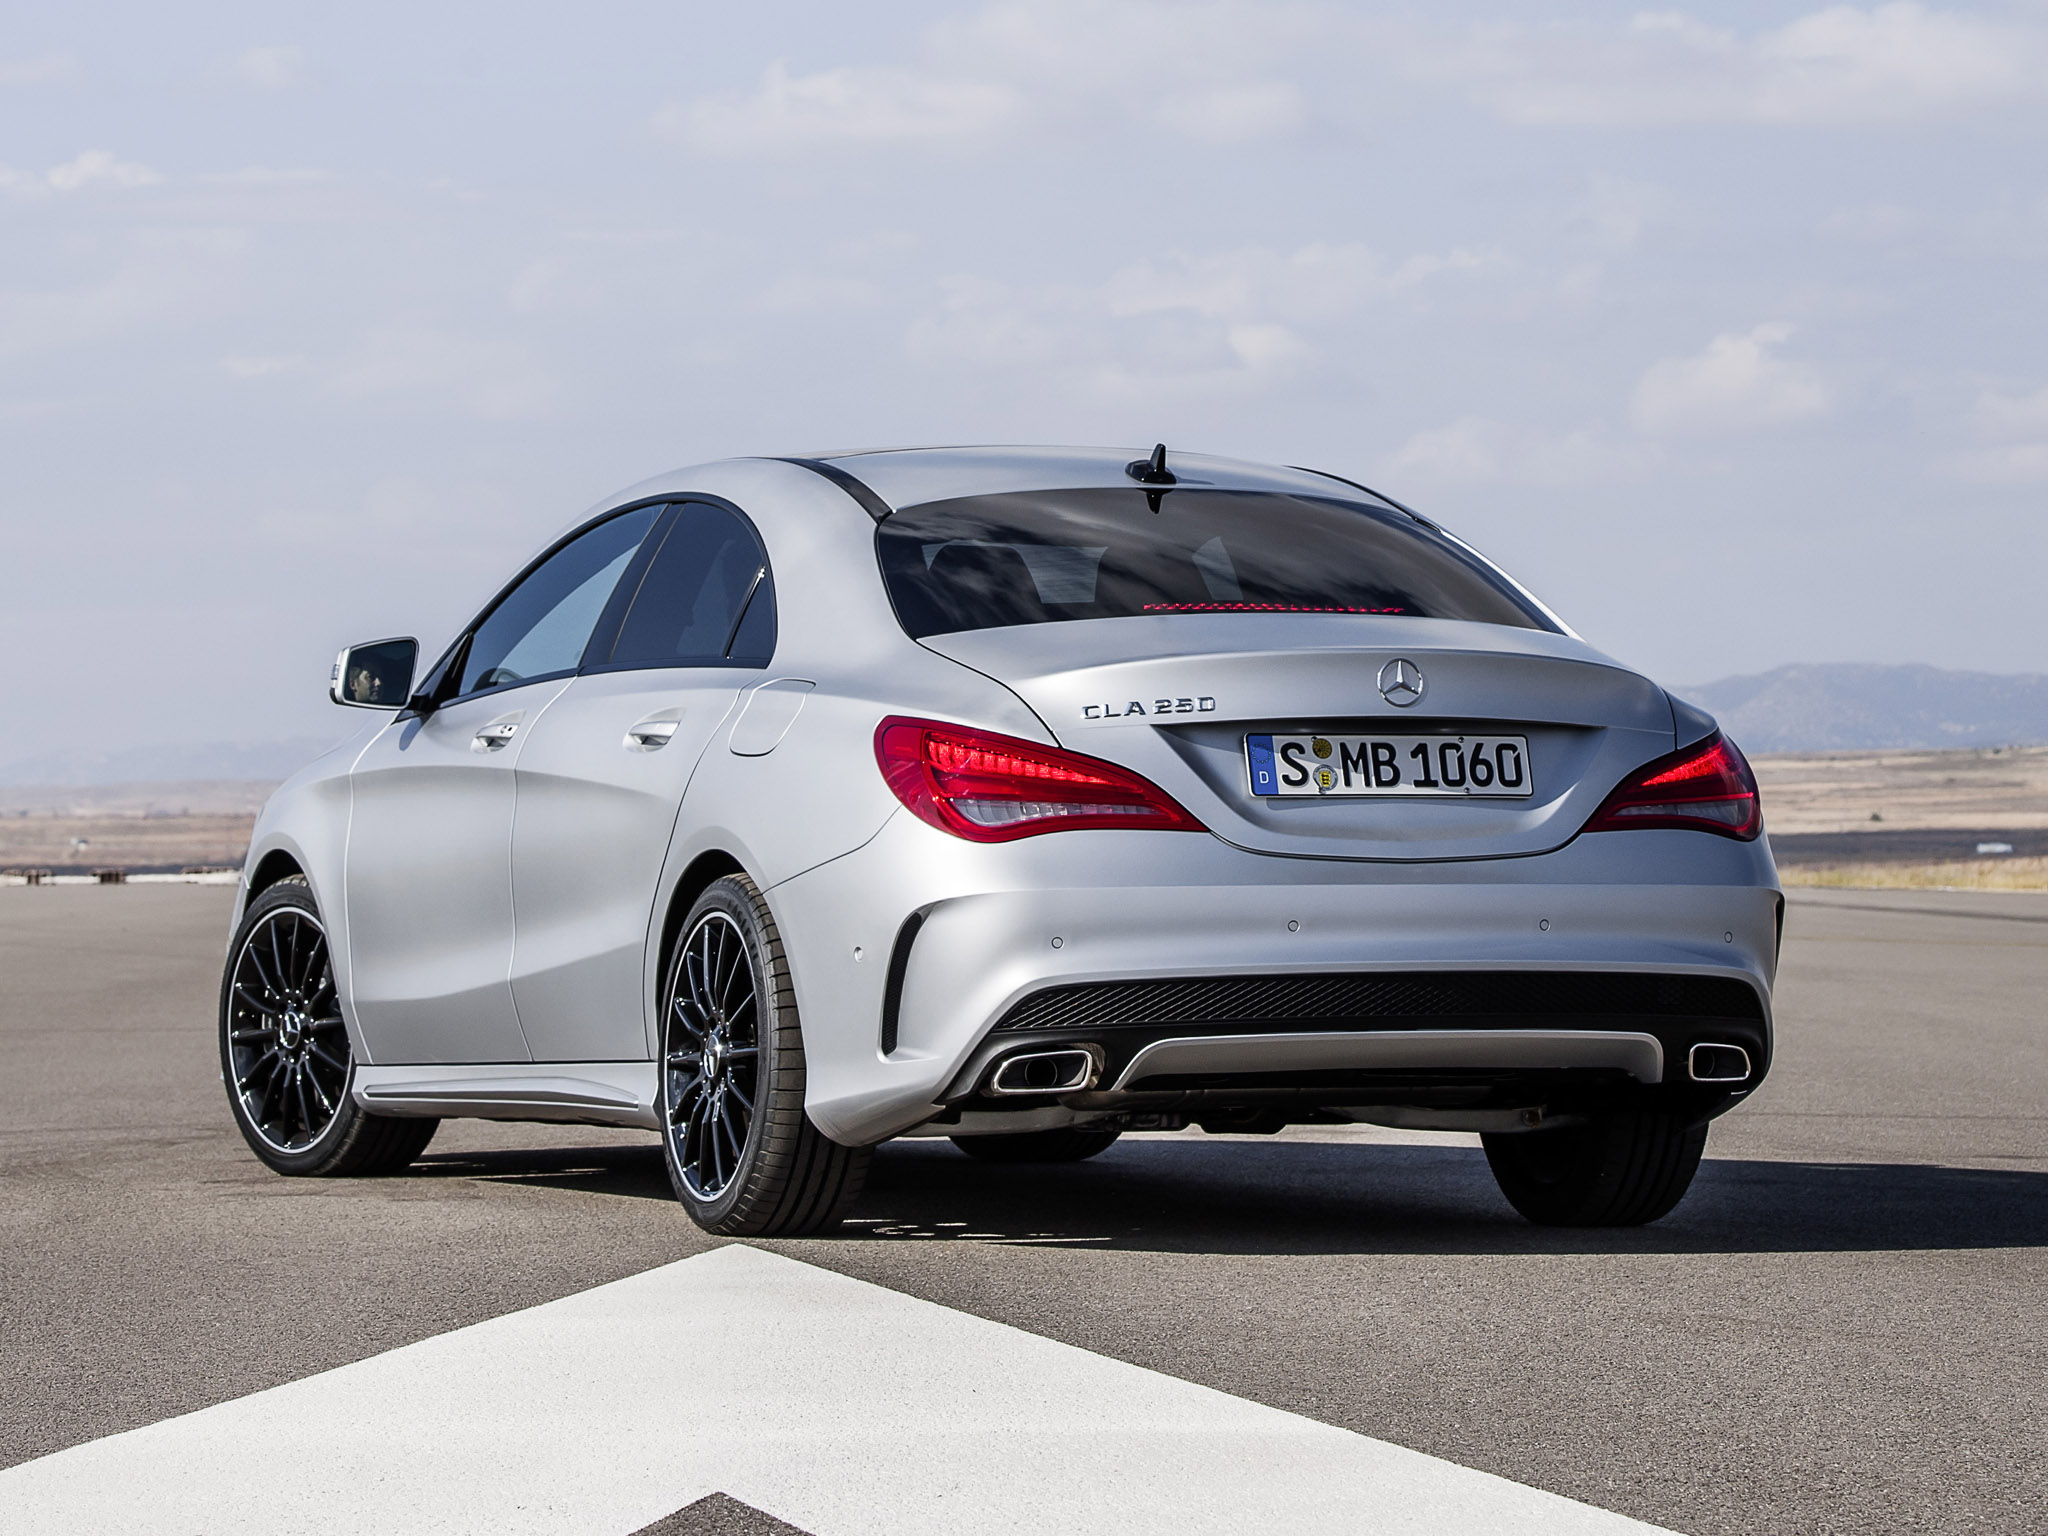 mercedes cla 250 amg sports package edition 1 2013 mercedes cla 250 amg sports package edition 1. Black Bedroom Furniture Sets. Home Design Ideas